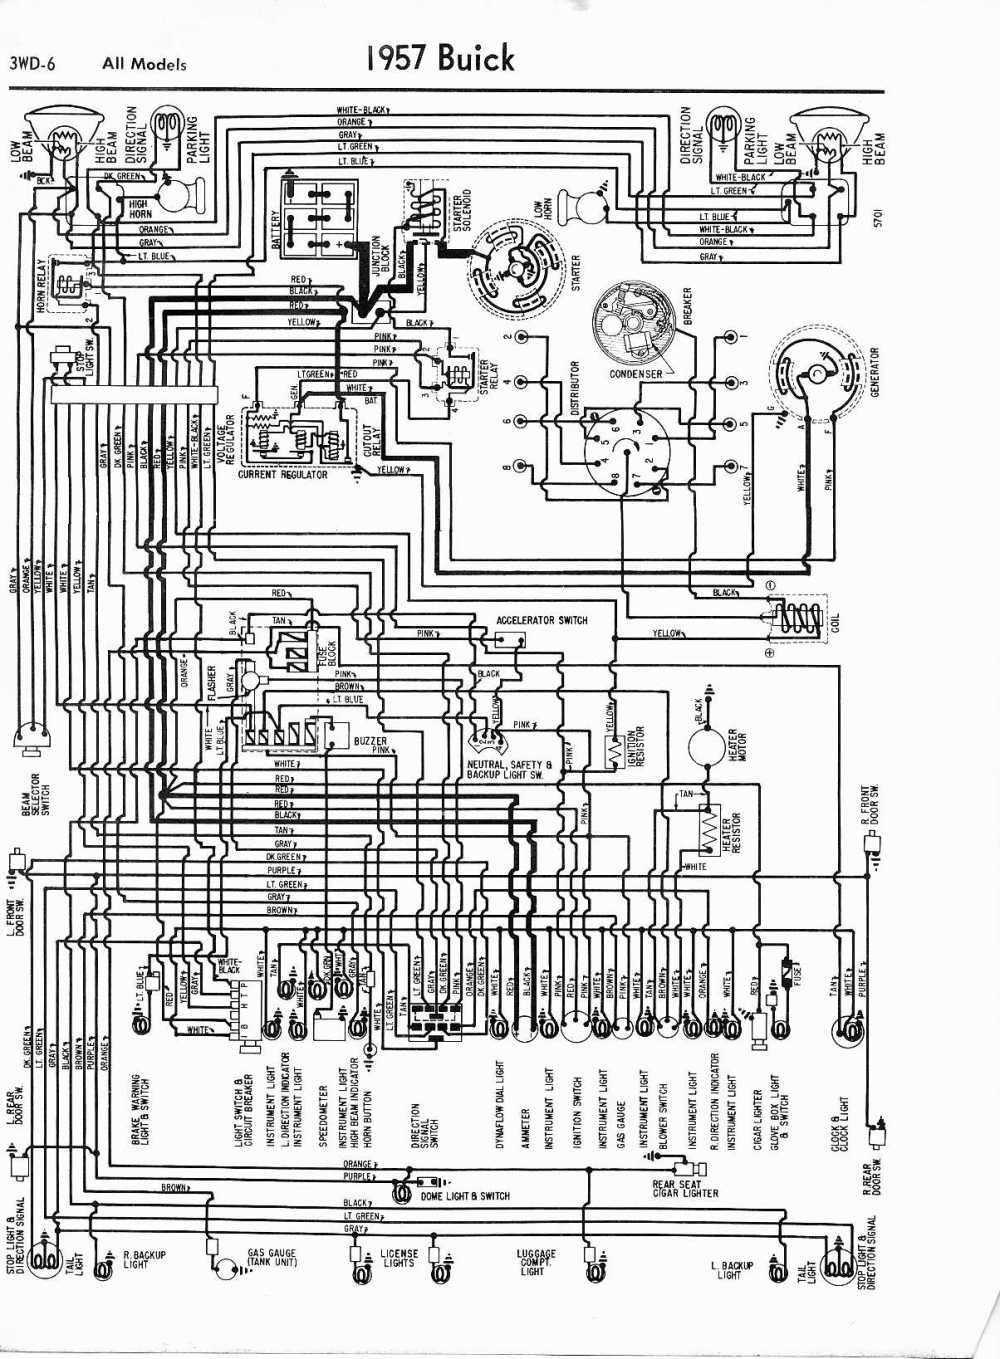 medium resolution of 1956 buick wiring diagram wiring library1956 buick wiring diagram